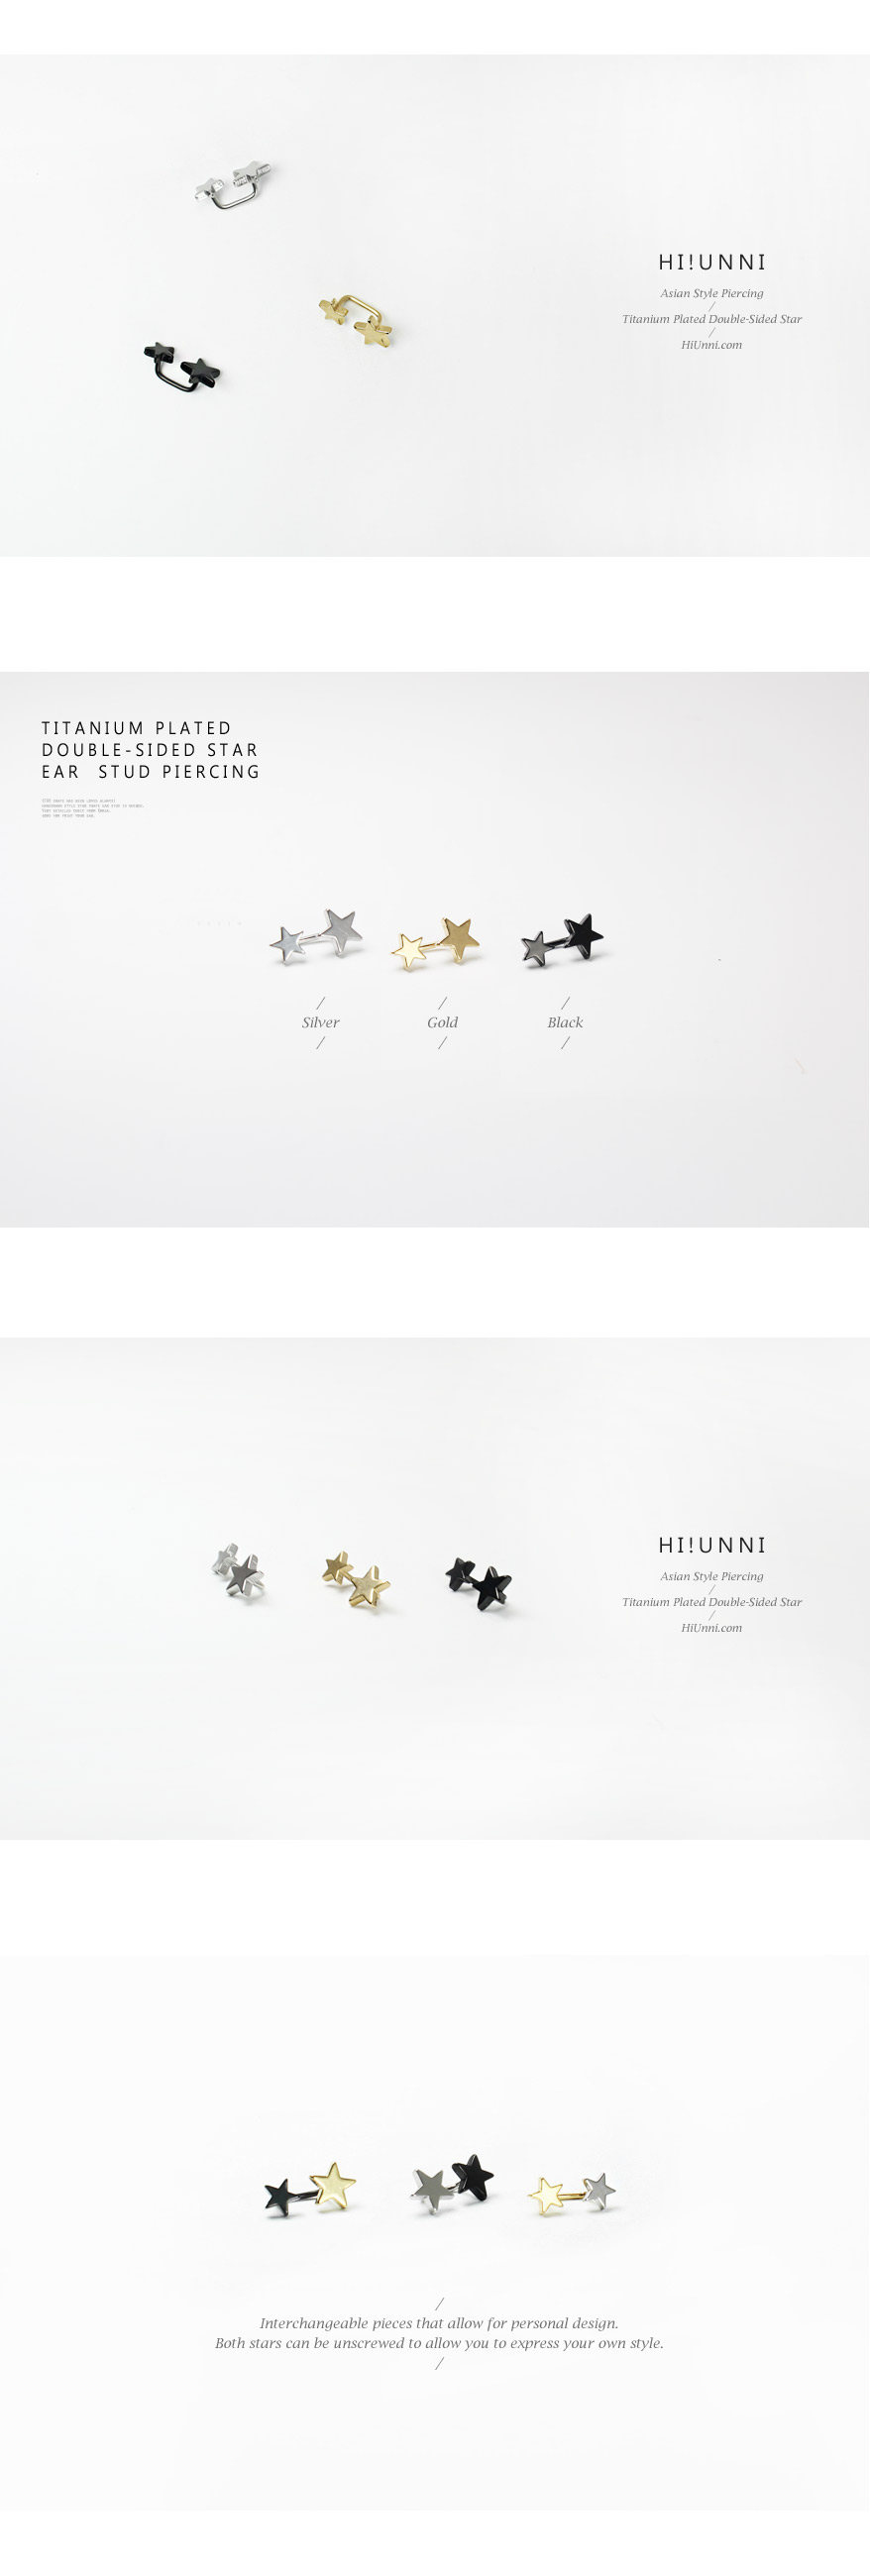 ear_studs_piercing_Cartilage_16g_316l_Stainless_Steel_earring_korean_asian_style_barbell_star_double_sided_2